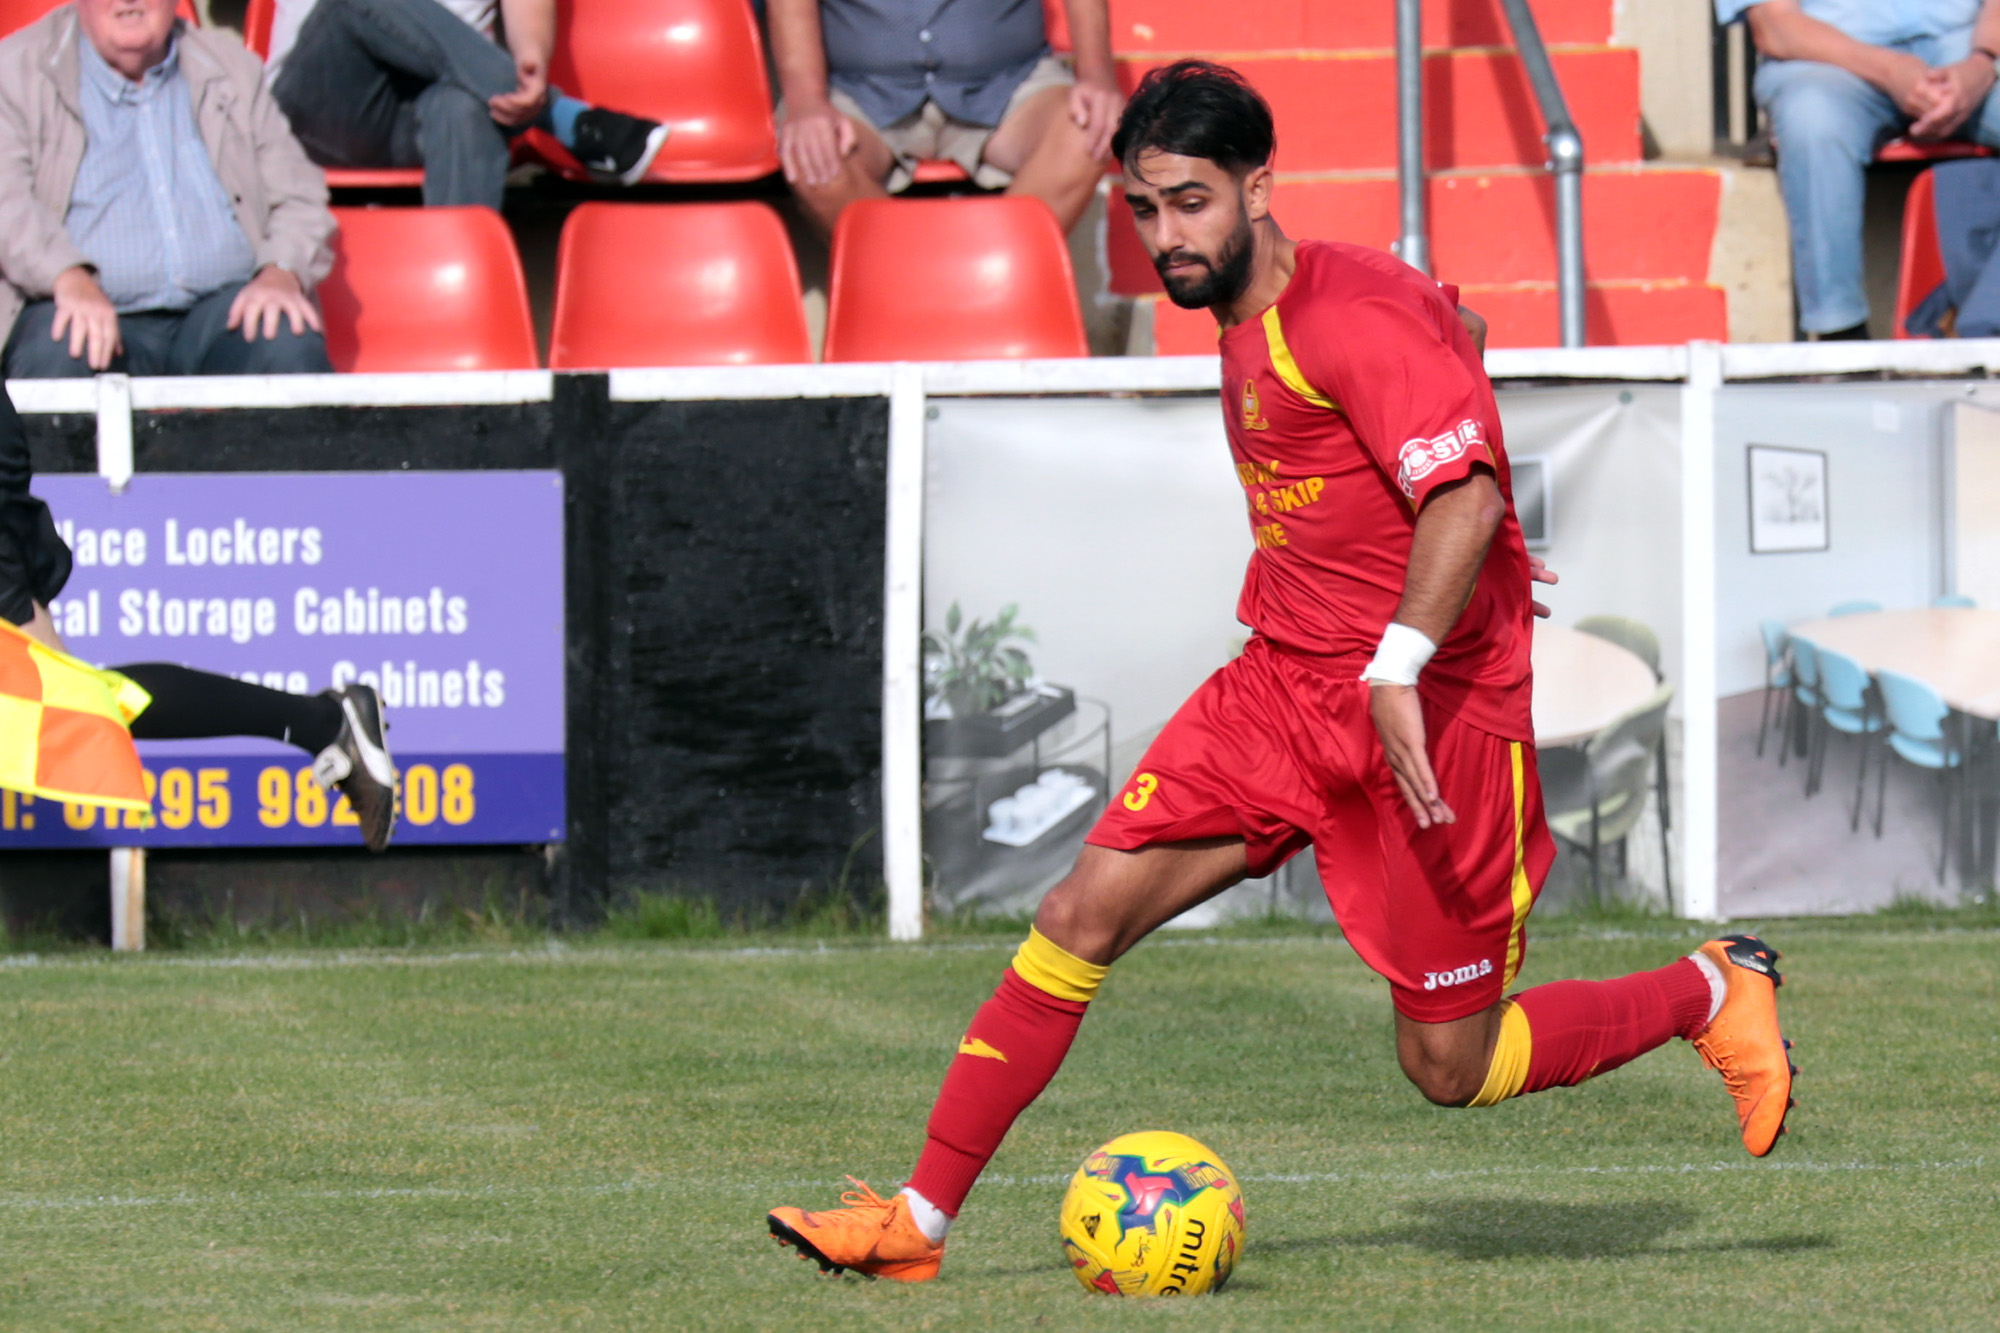 Banbury United's points deduction is in relation to the registration of loanee Ravi Shamsi Picture: Ric Mellis